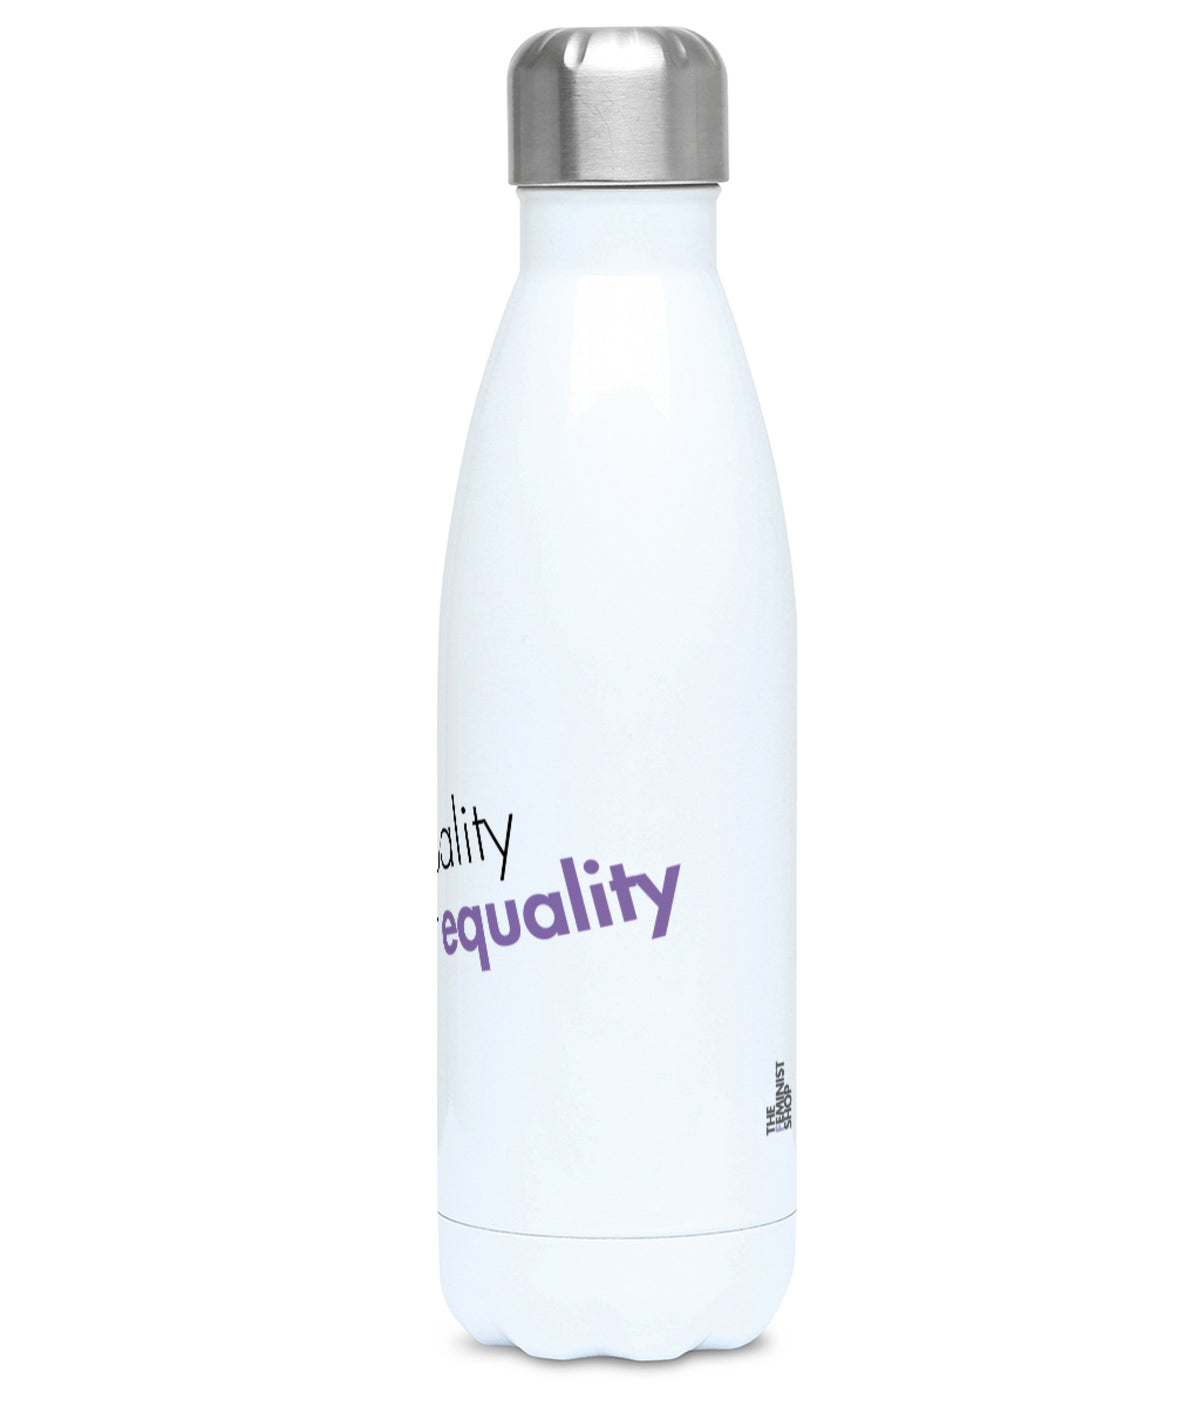 Feminist Water Bottle - Men Of Quality Don't Fear Equality - Right